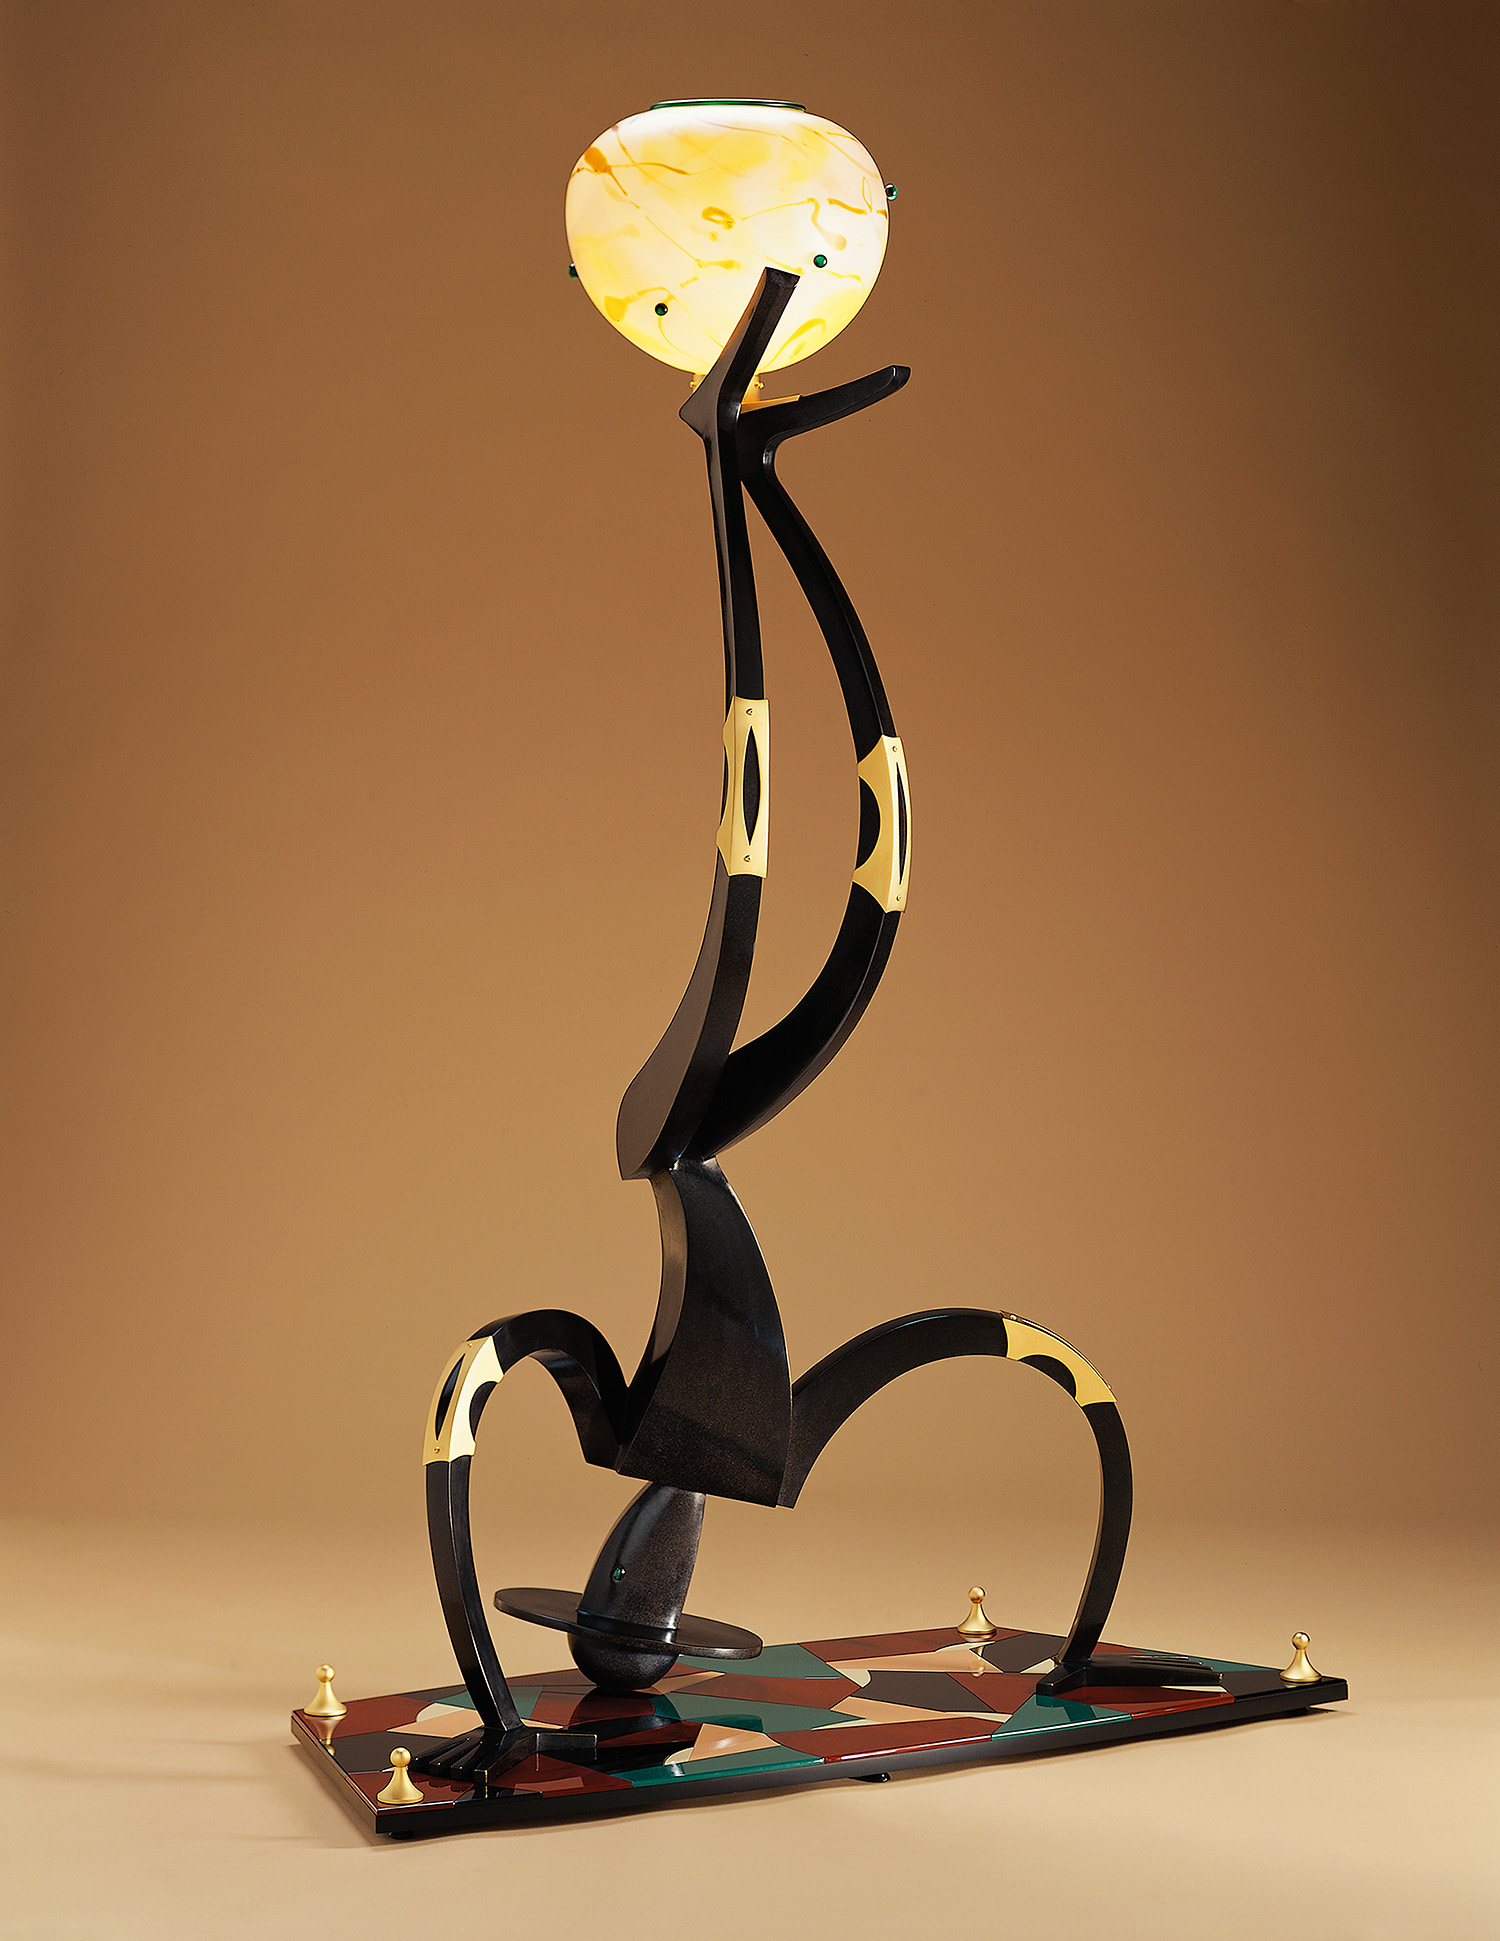 Upside Down Man   (2/6) 2002. Blown glass, cast and patinated bronze, gold-plated brass, aluminum, Vitrolite and lampworked glass. 78 x 54 x 24""